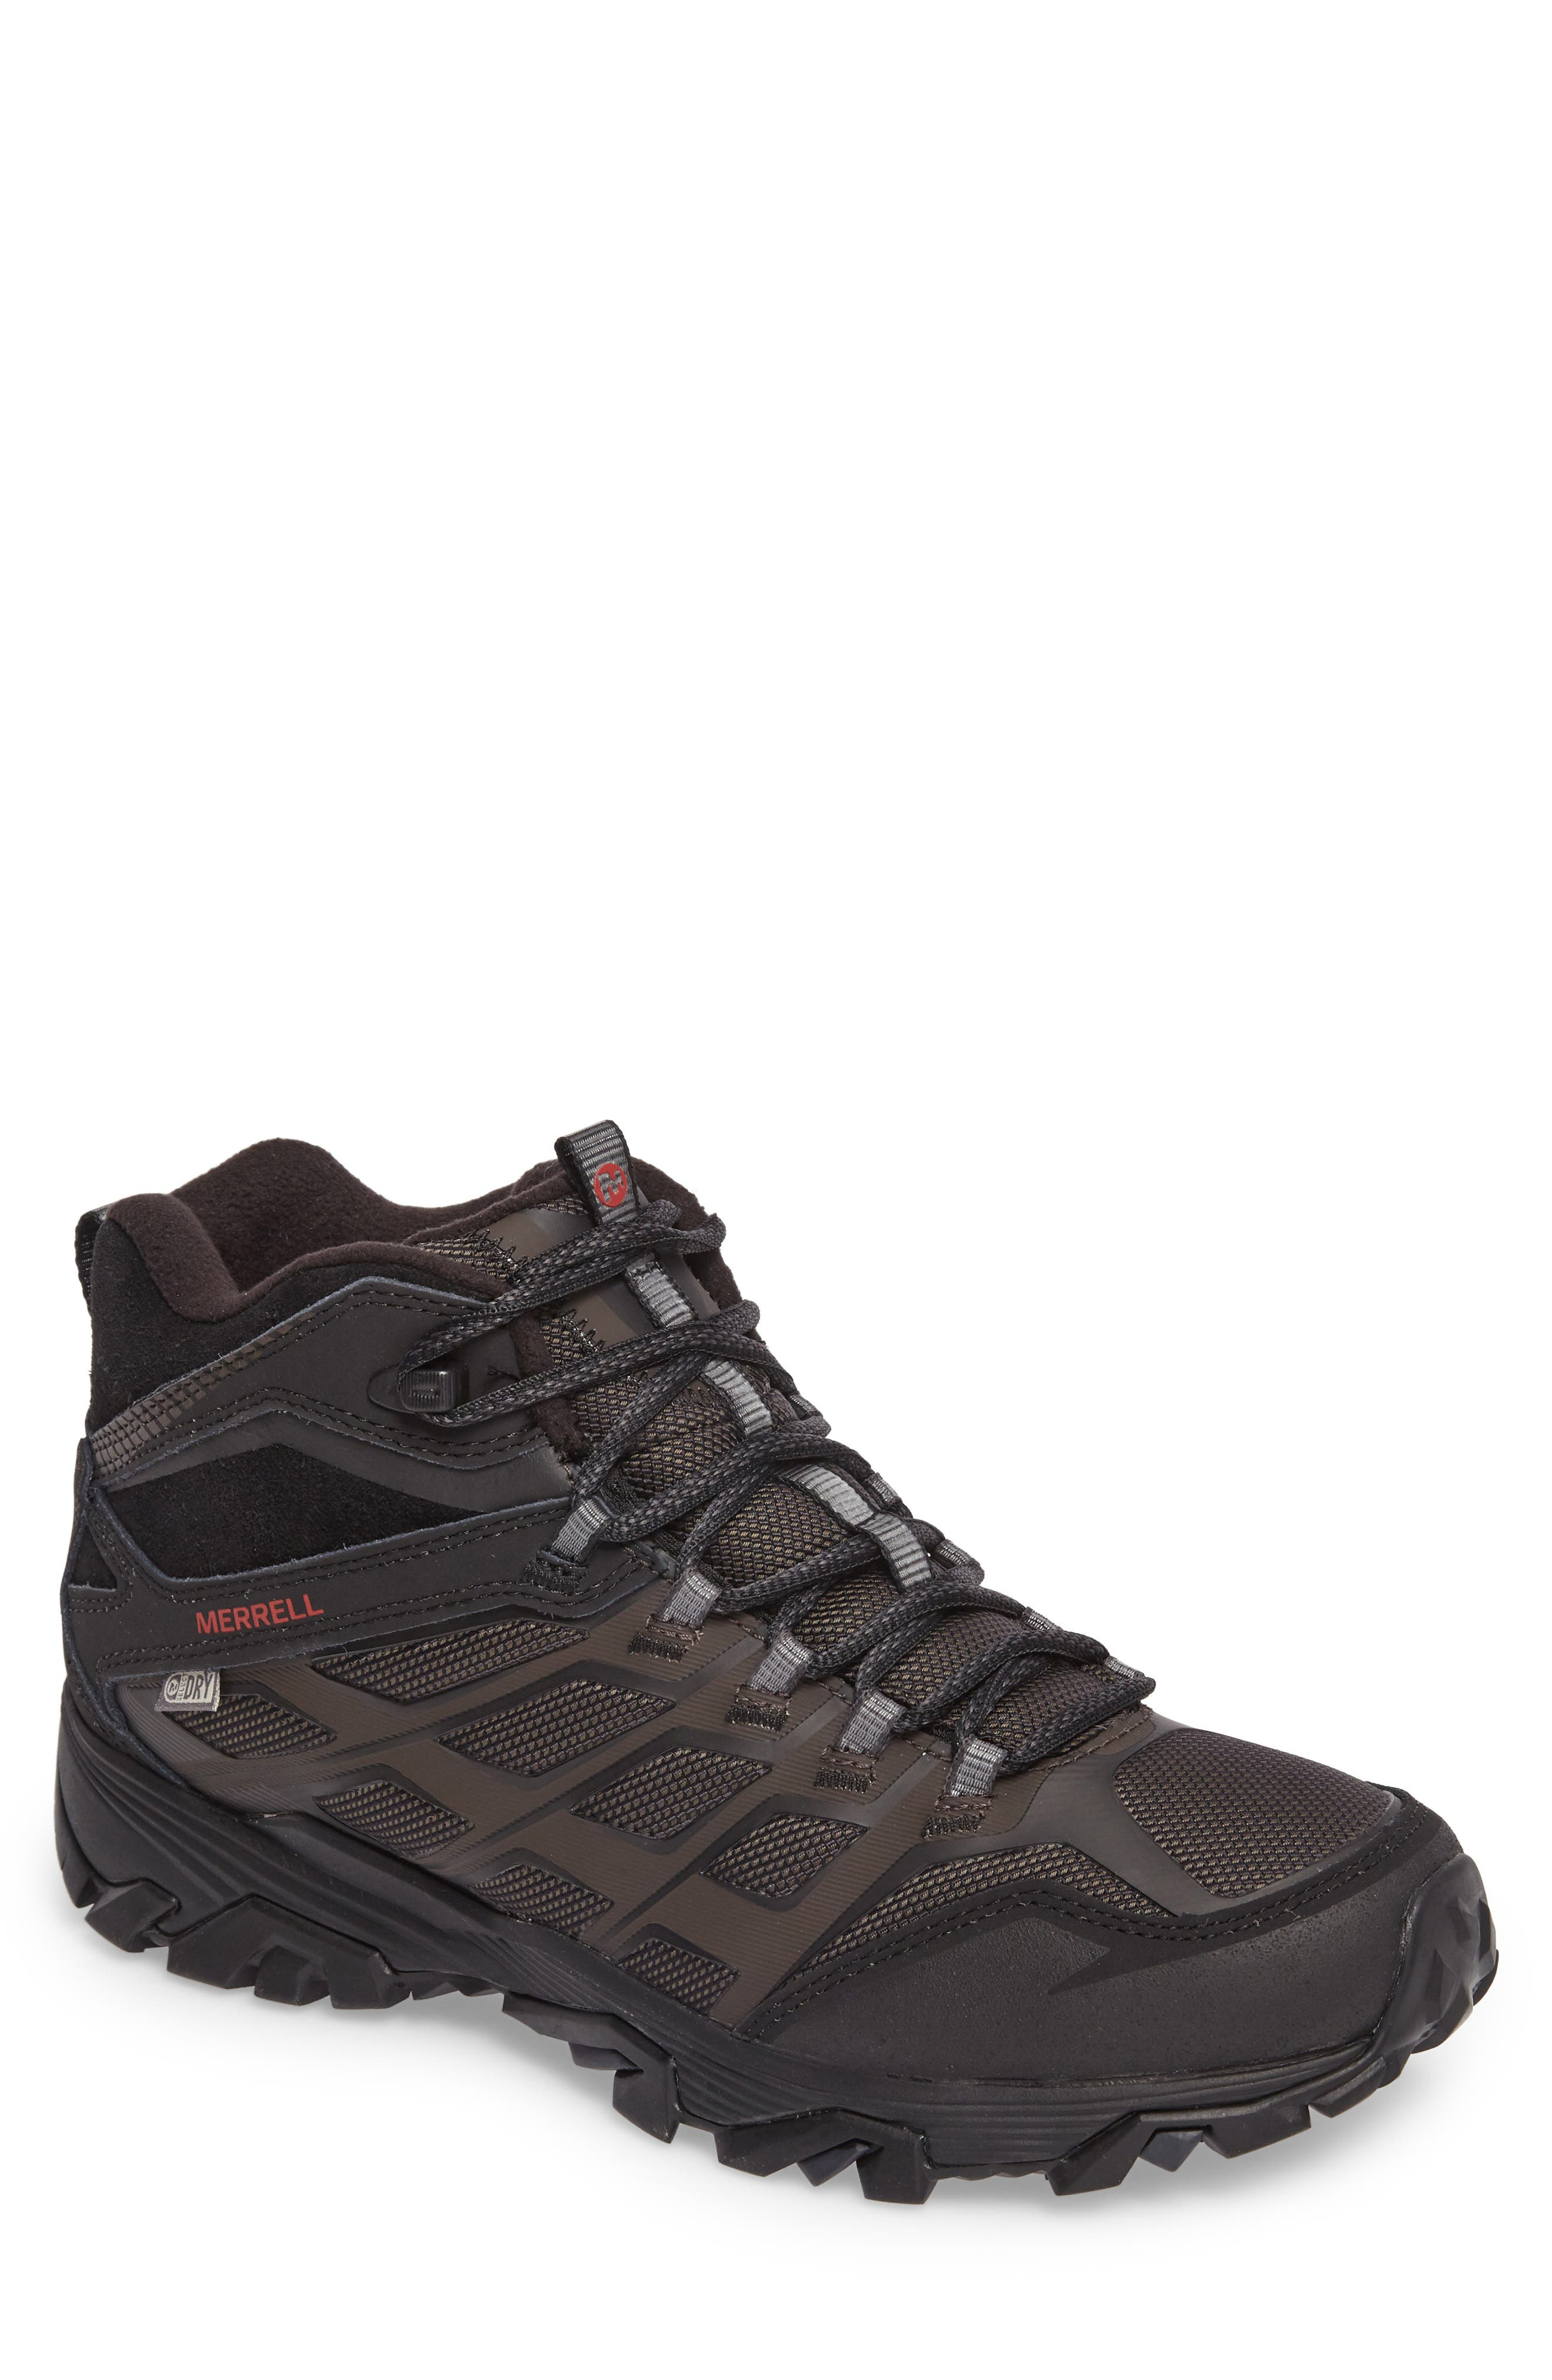 Moab FST Ice Thermo Waterproof Hiking Shoe,                         Main,                         color, Black Fabric